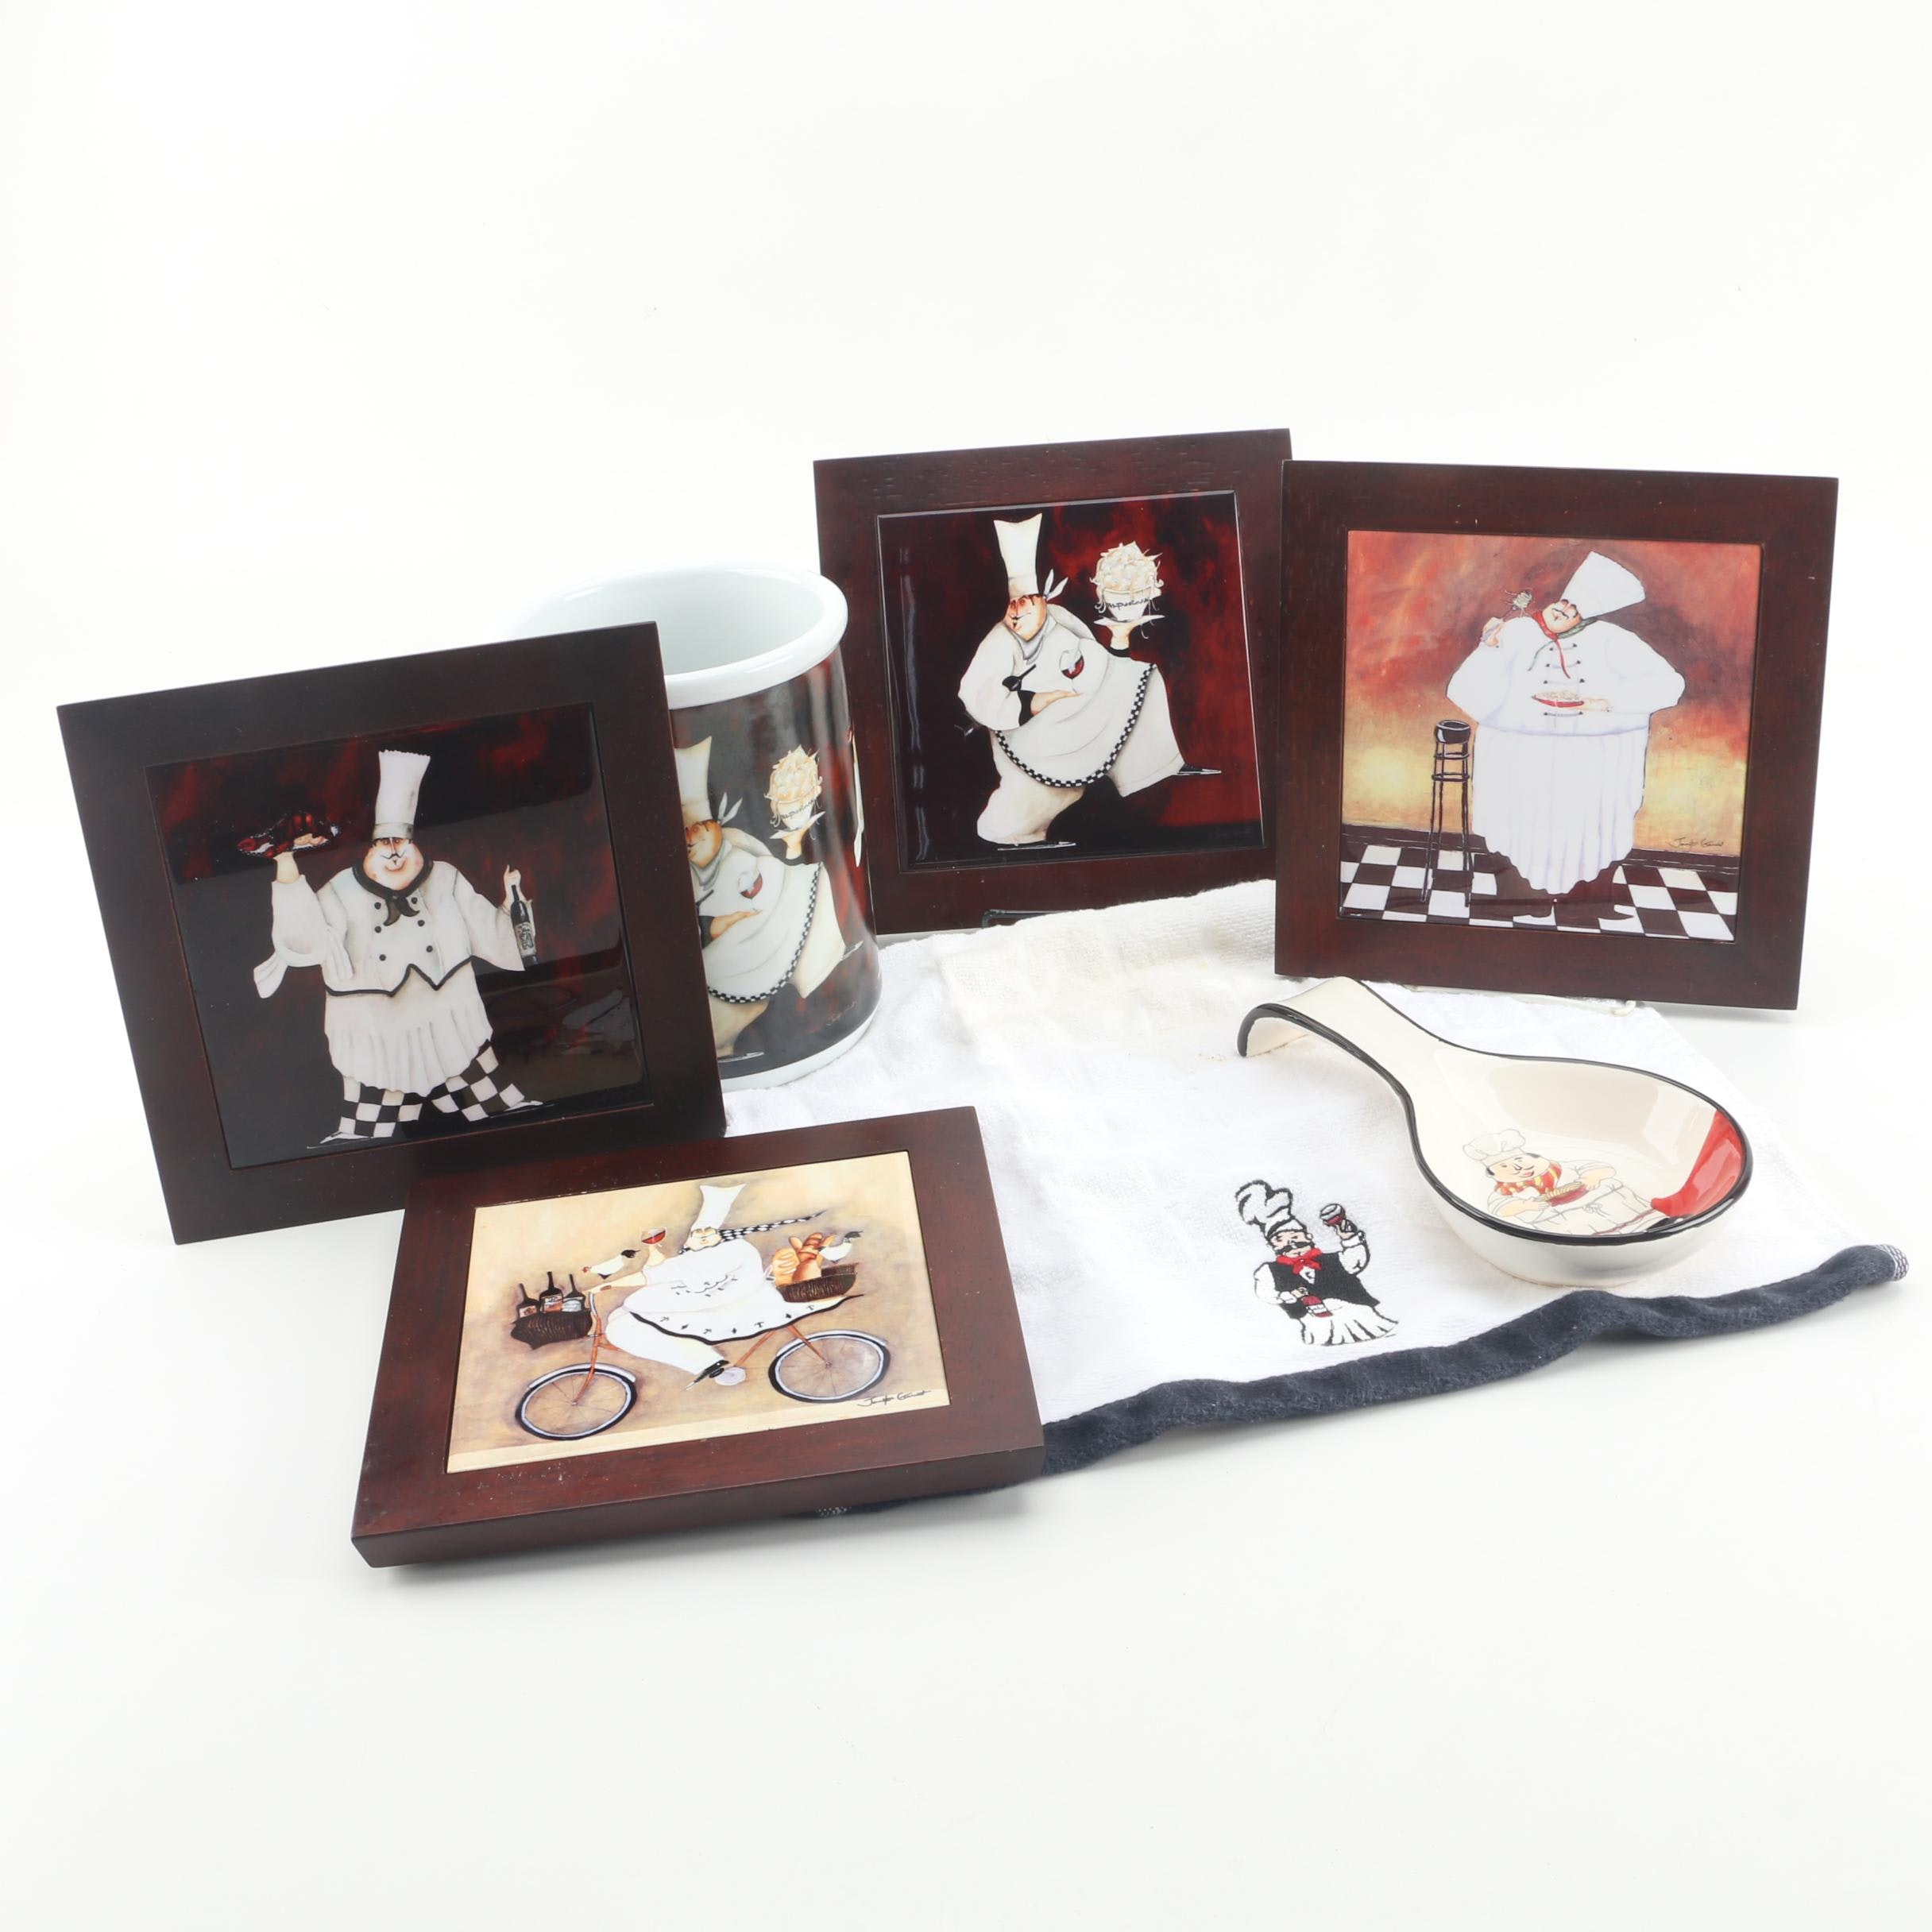 Cypress Home Ceramic Jar and Wall Hangings with Other Chef Themed Kitchenware